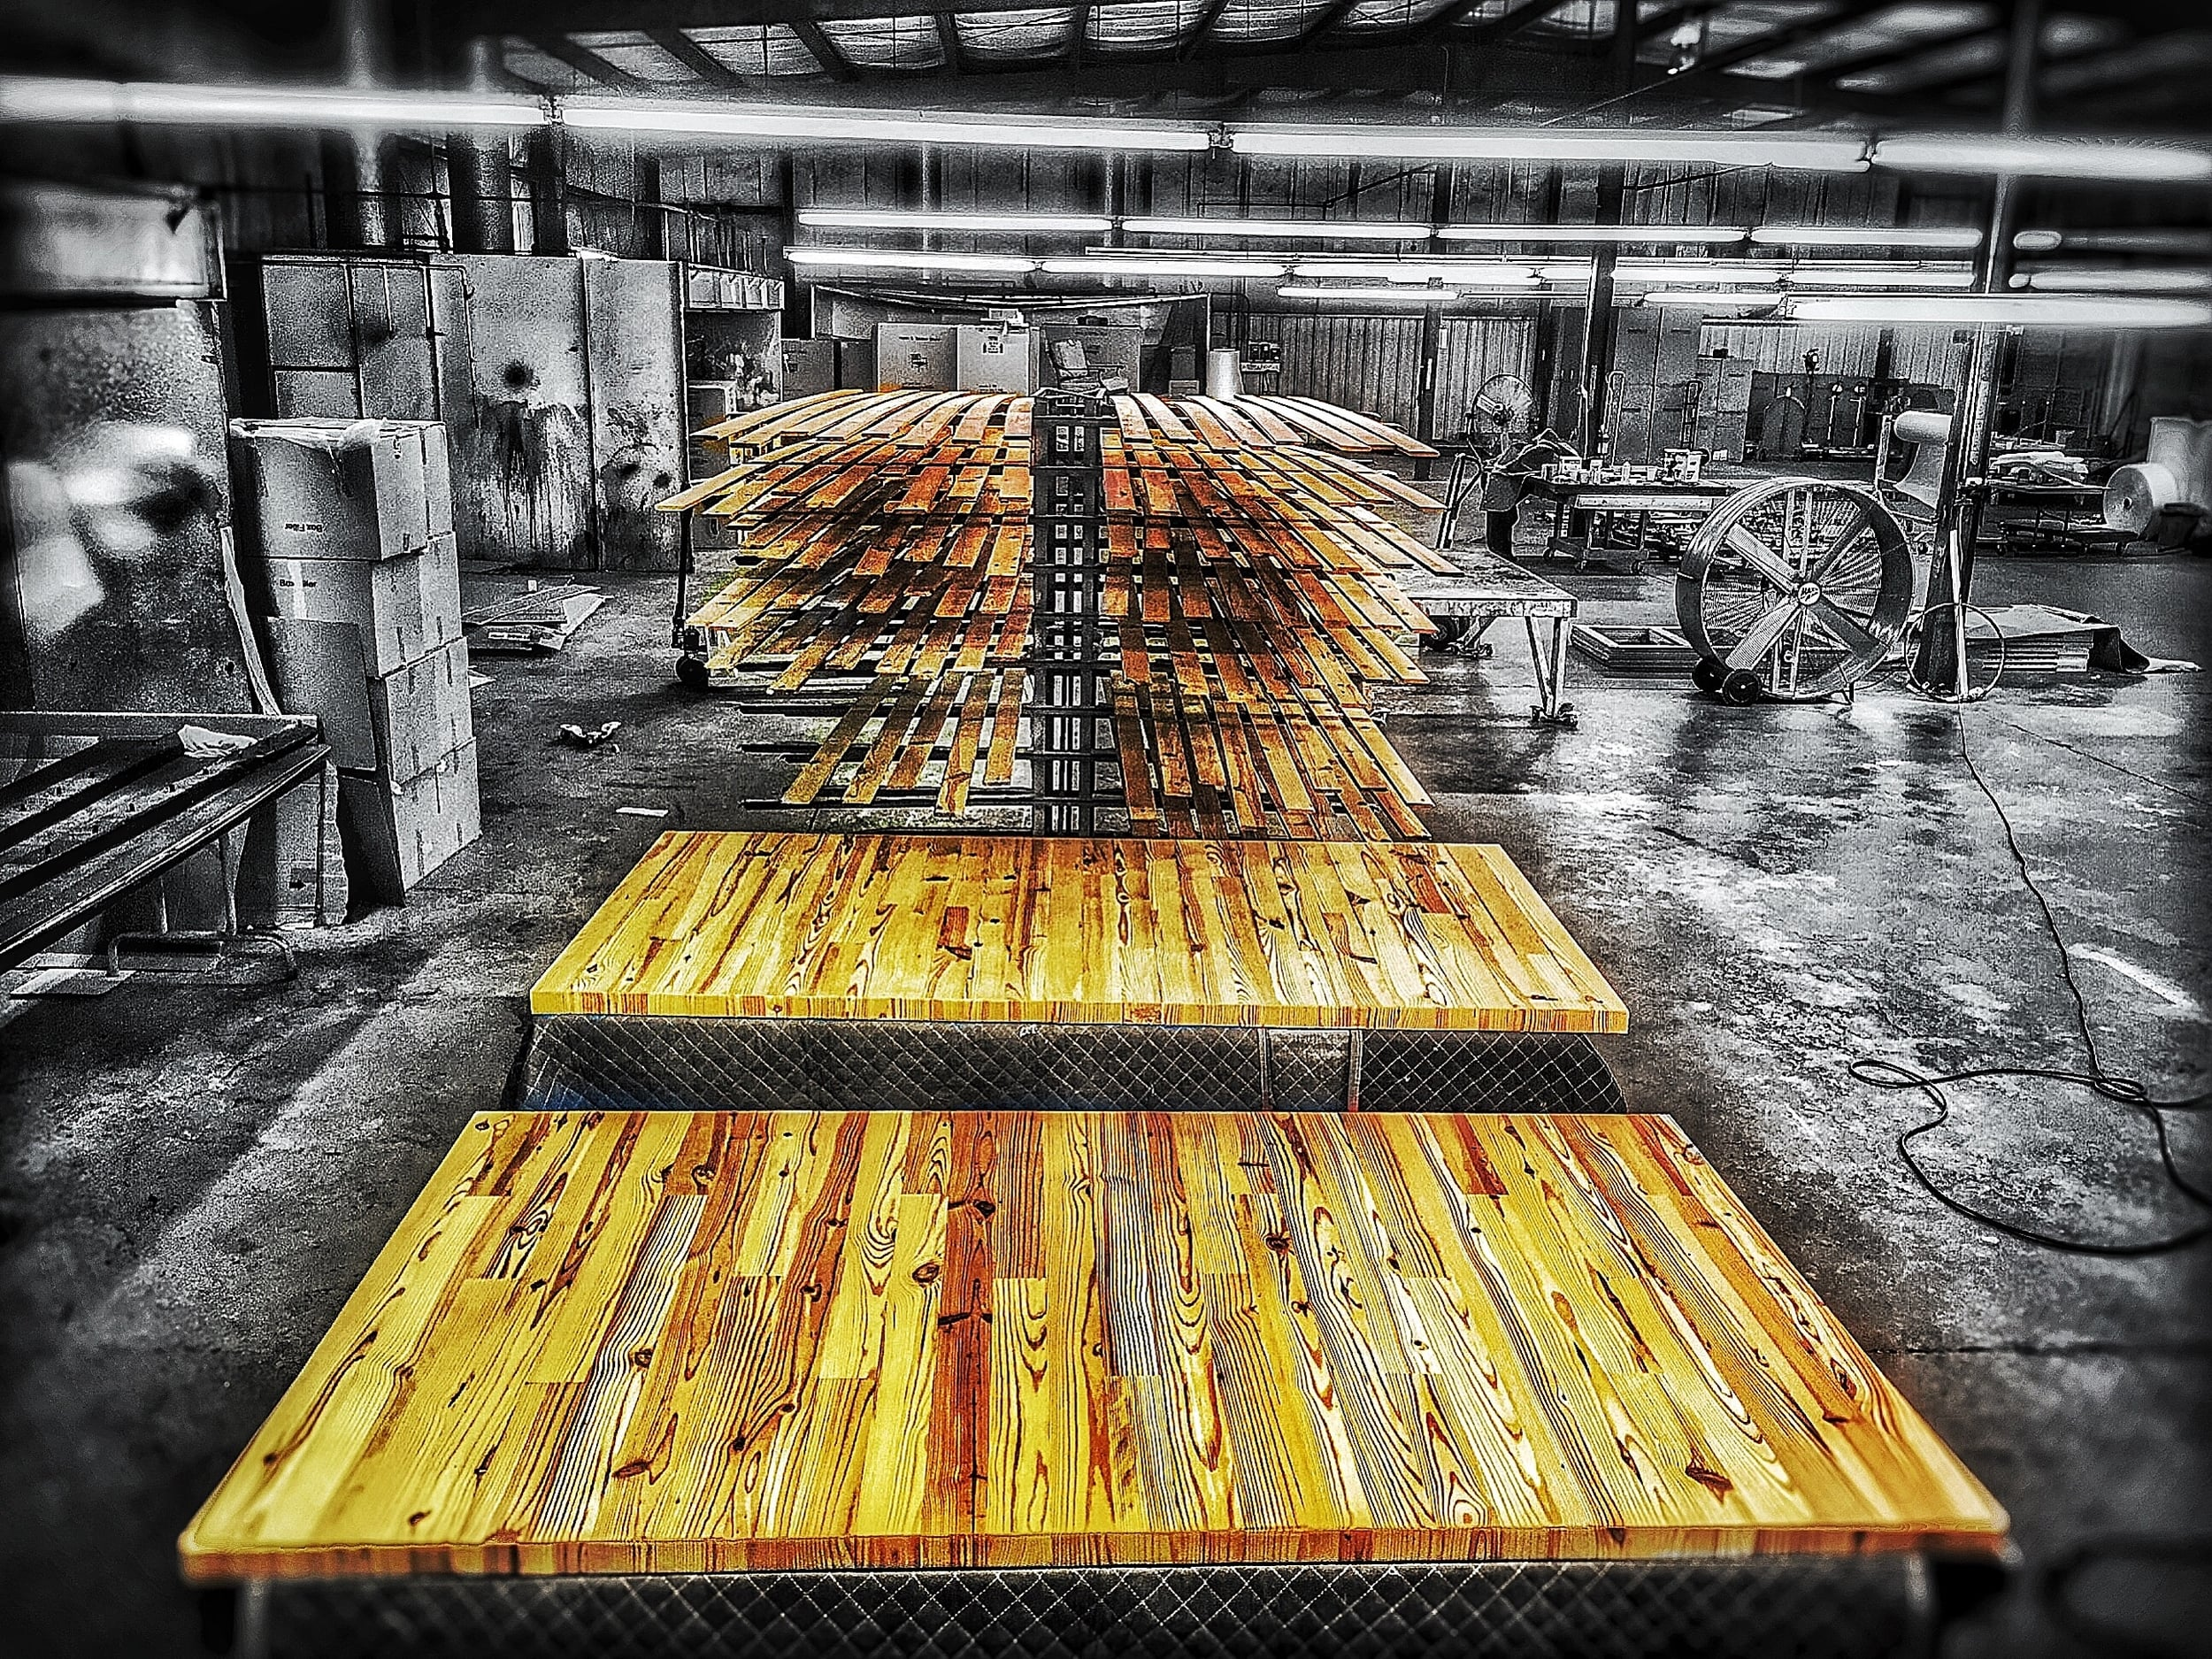 Reclaimed Knotty Pine flooring gets refinished for a new life as Industrial Doors and Walls